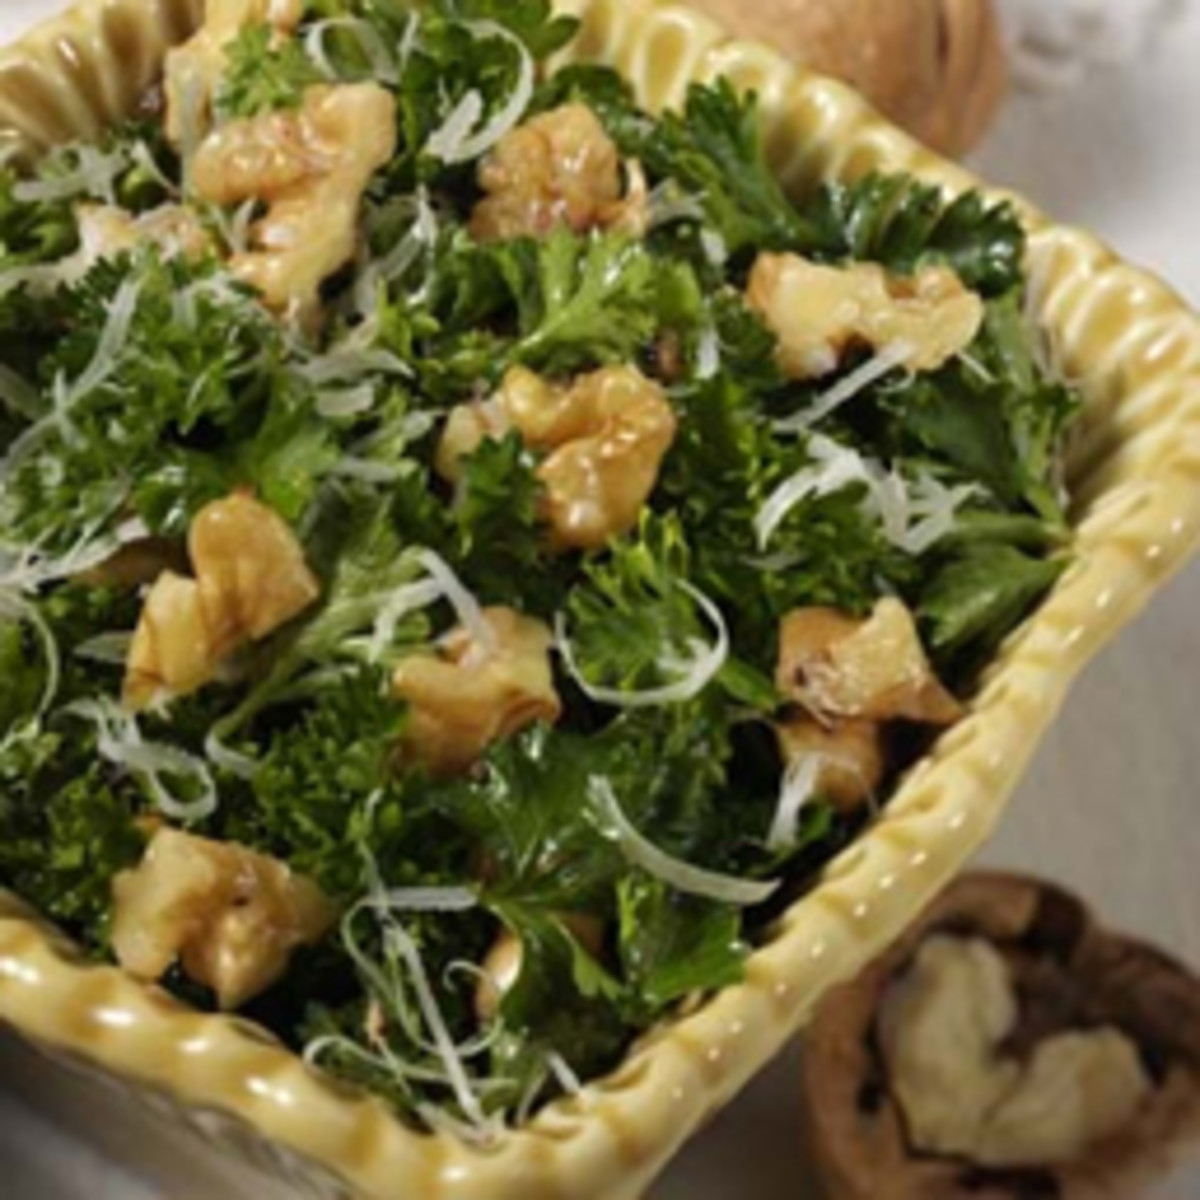 Marion Cunningham's Parsley Walnut Salad